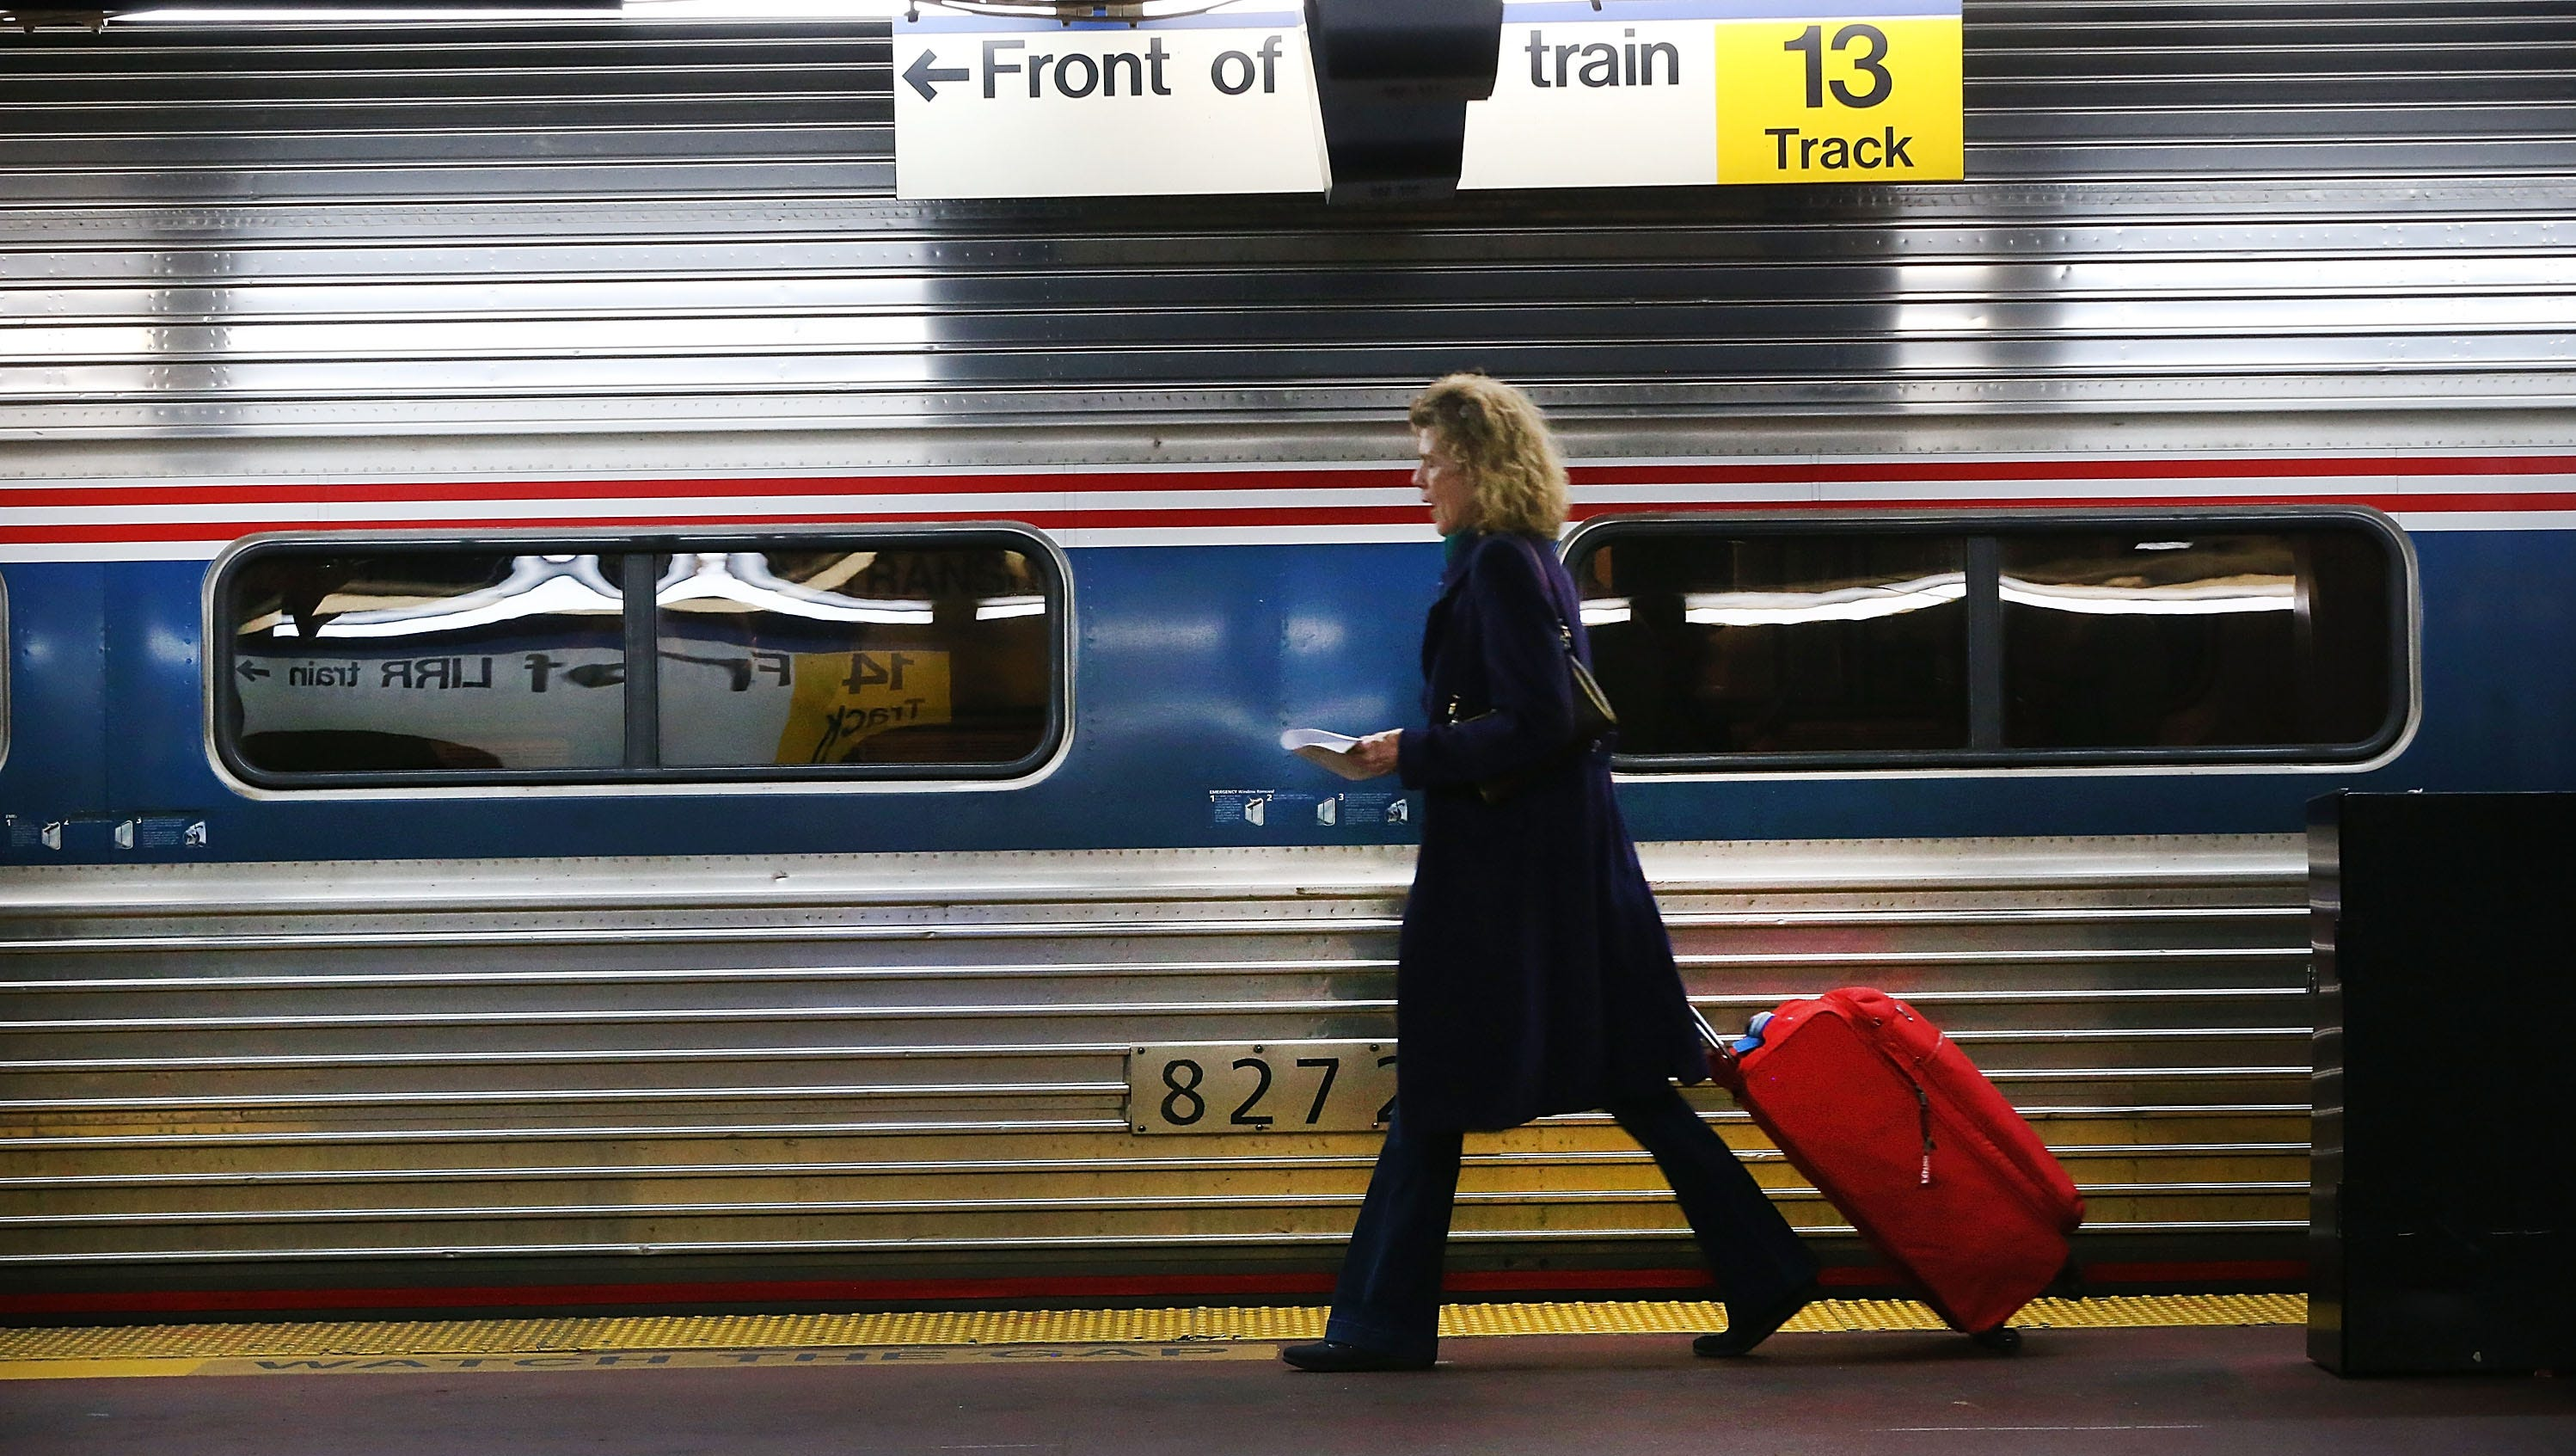 Is Amtrak becoming like the airlines?